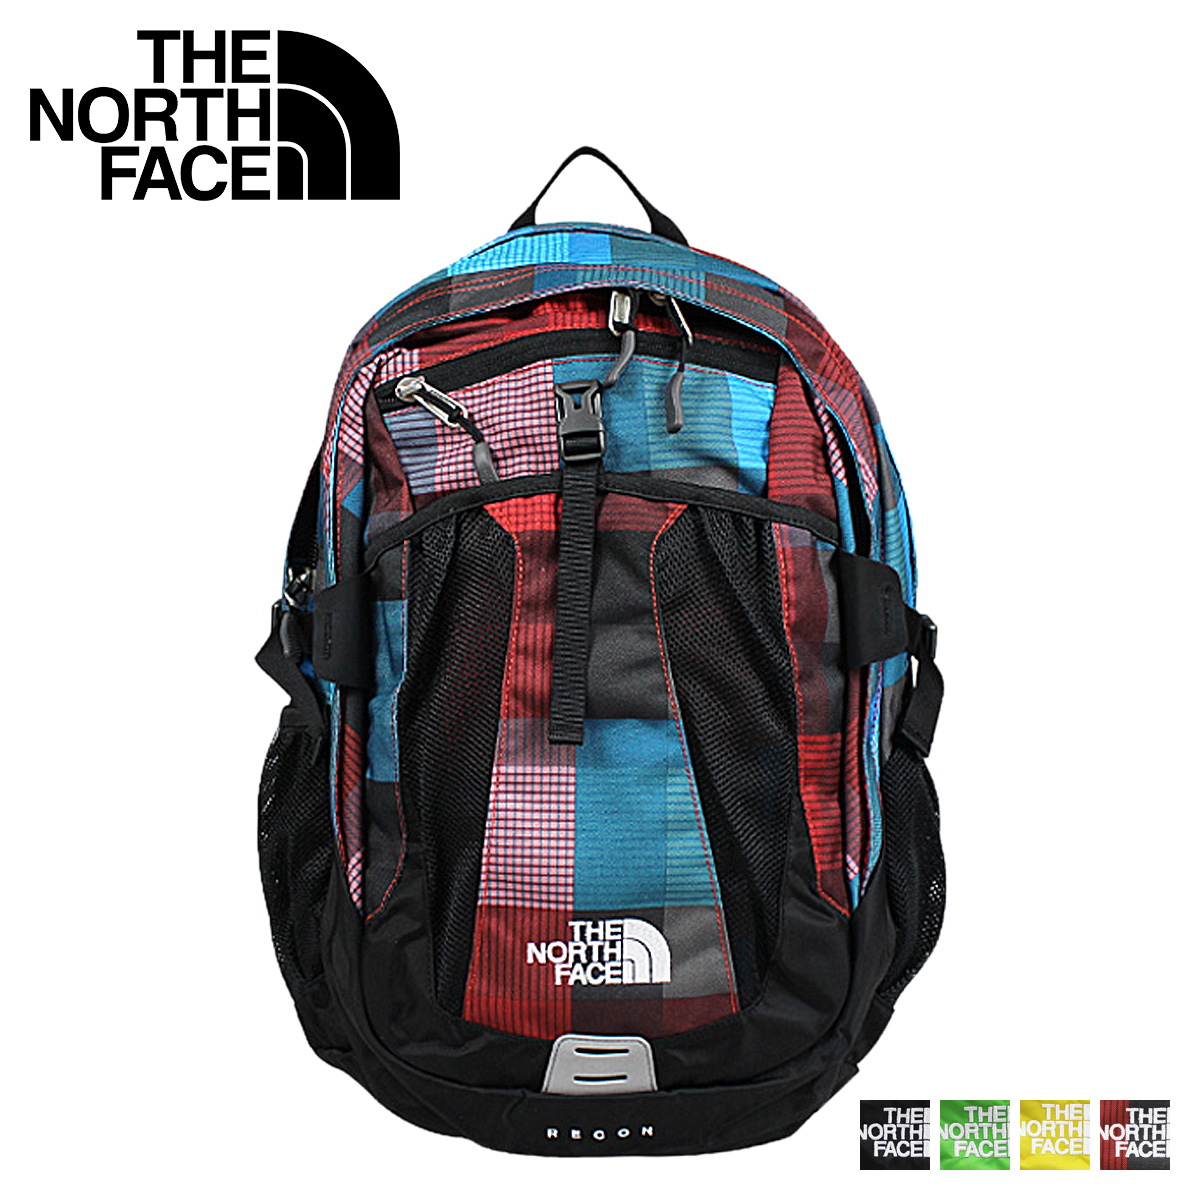 ALLSPORTS   SOLD OUT  the north face THE NORTH FACE Backpack Backpack 4  color RECON BACKPACK mens A92X  genuine   b5ea8c7e3936